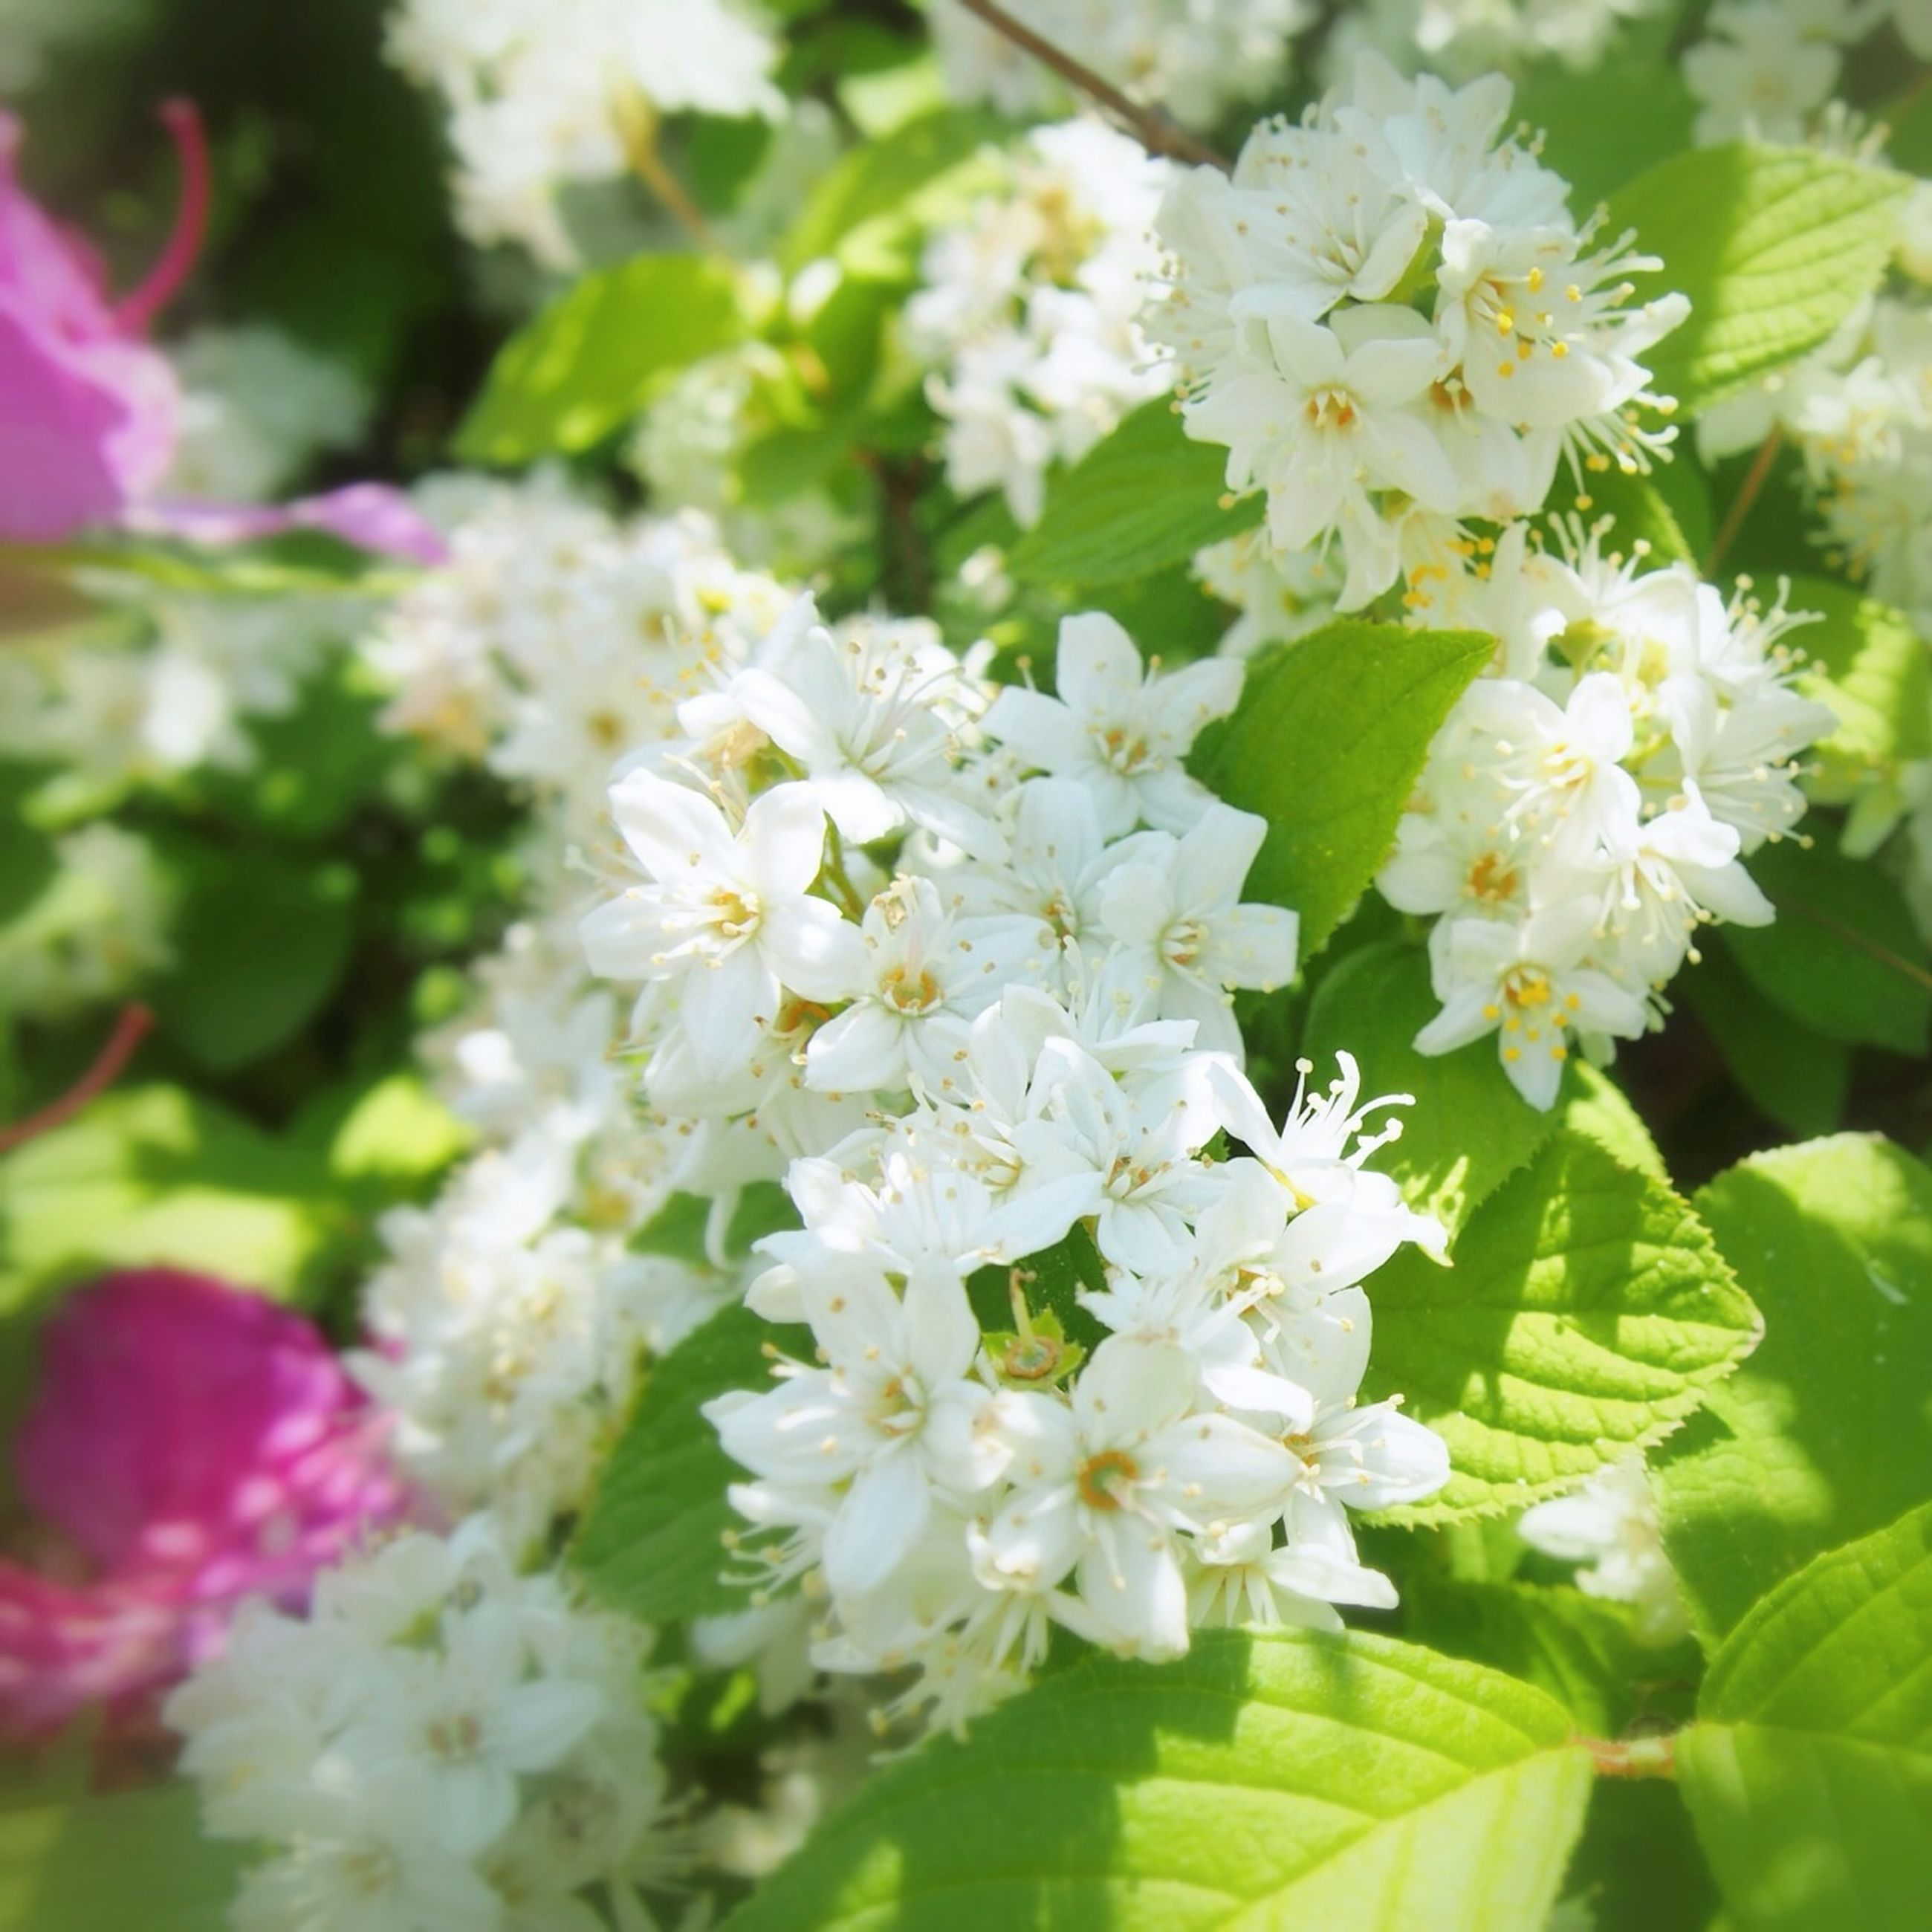 flower, freshness, fragility, growth, petal, beauty in nature, white color, flower head, focus on foreground, nature, blooming, close-up, plant, leaf, in bloom, blossom, park - man made space, outdoors, day, no people